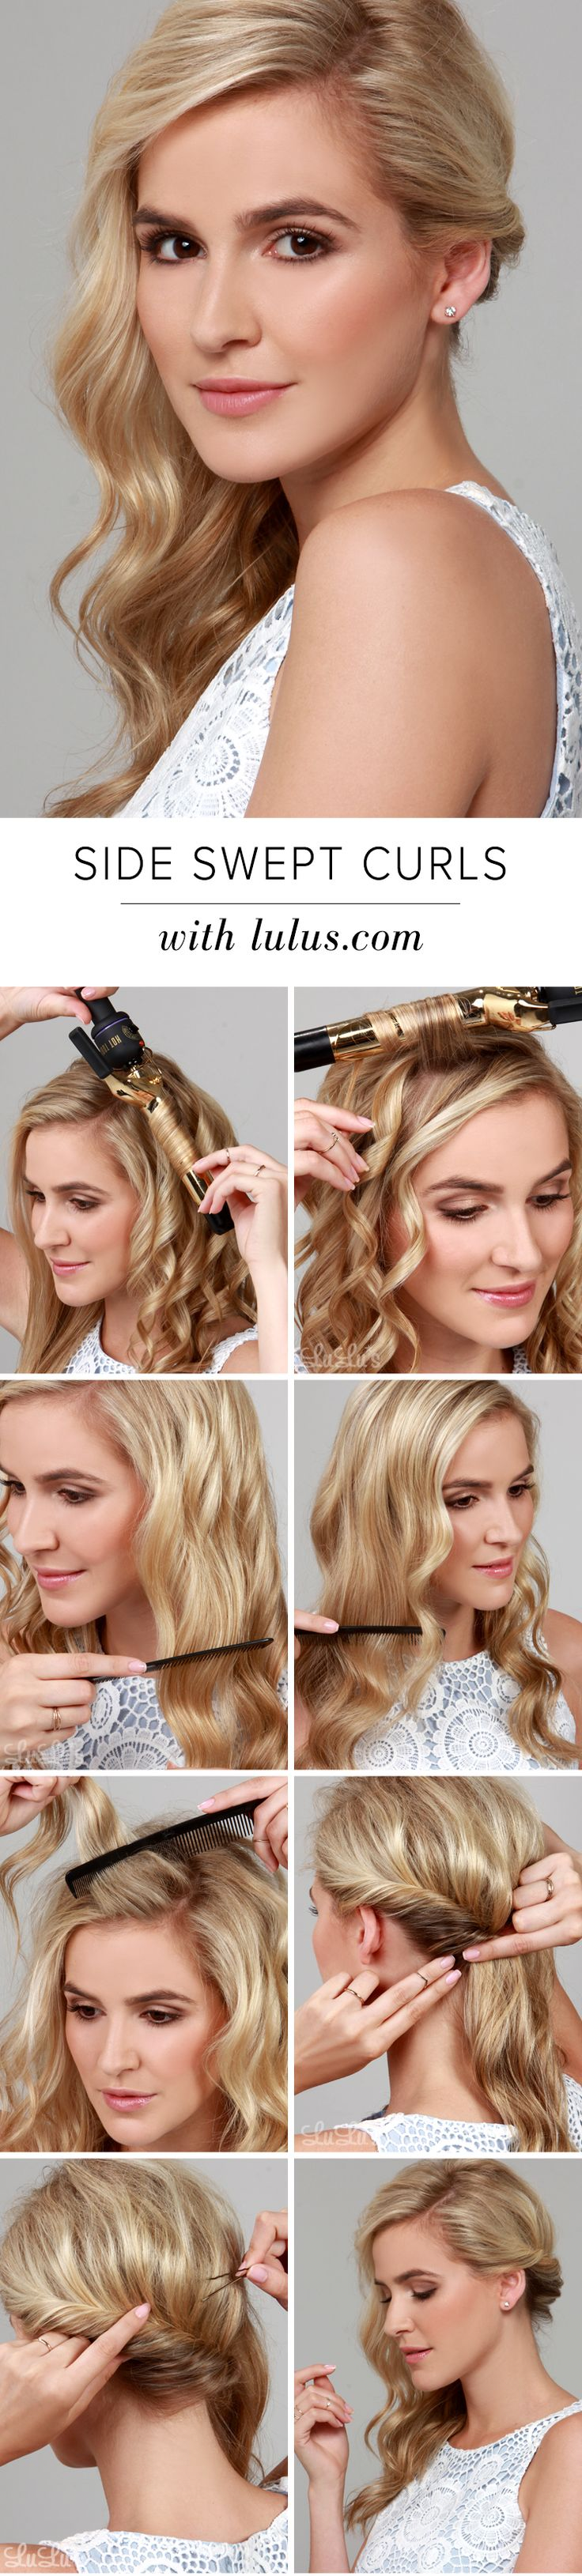 2017 05 side curls hairstyles - Lulu S How To Side Swept Curls Hair Tutorial At Lulus Com